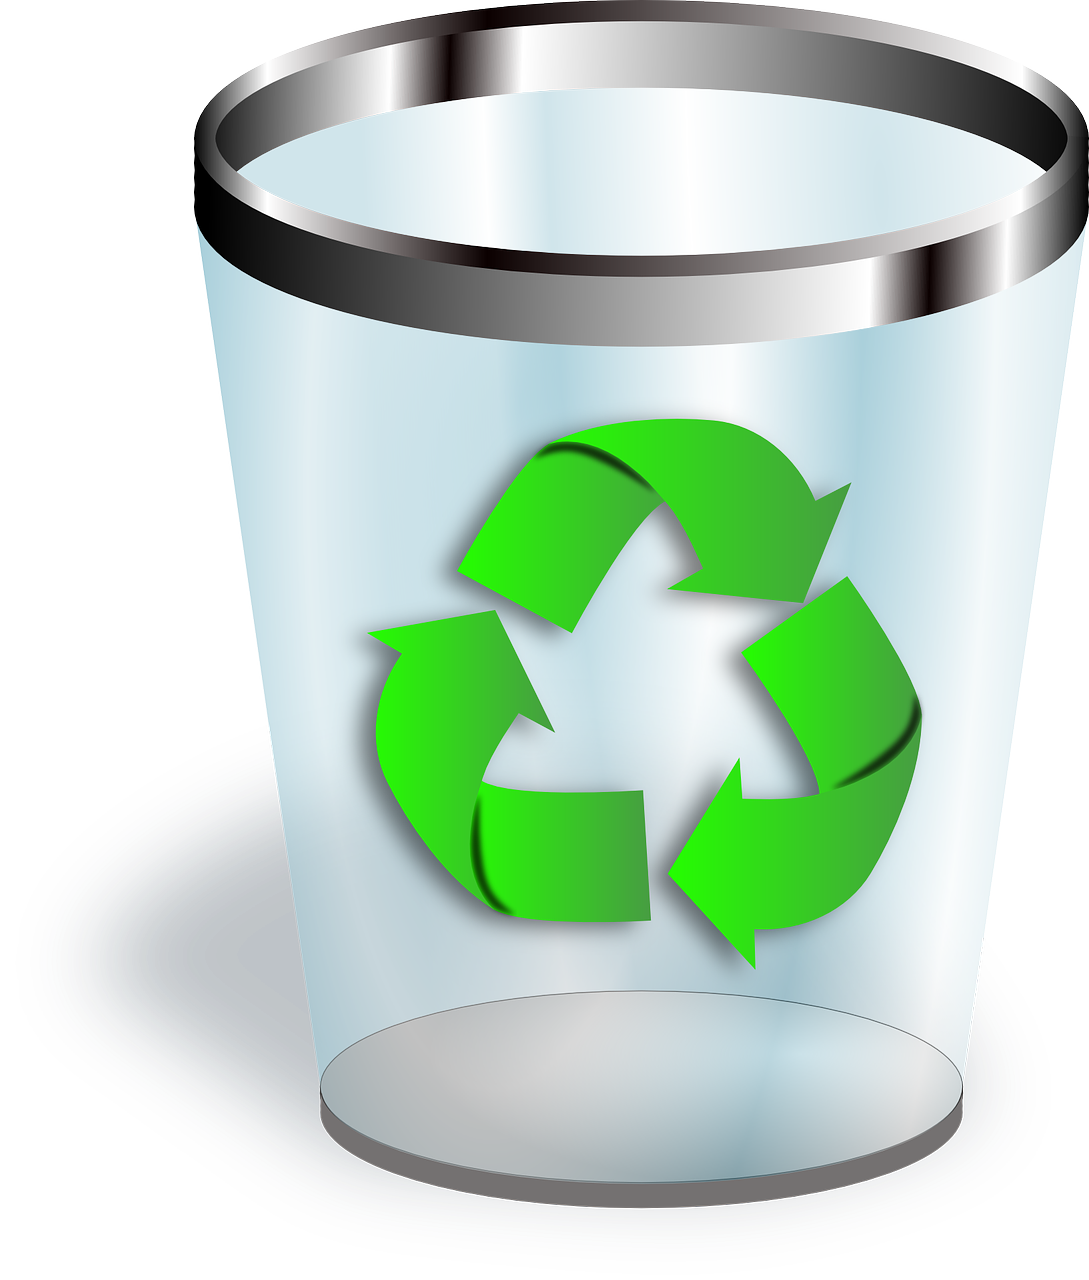 Windows recover deleted files not in recycle bin